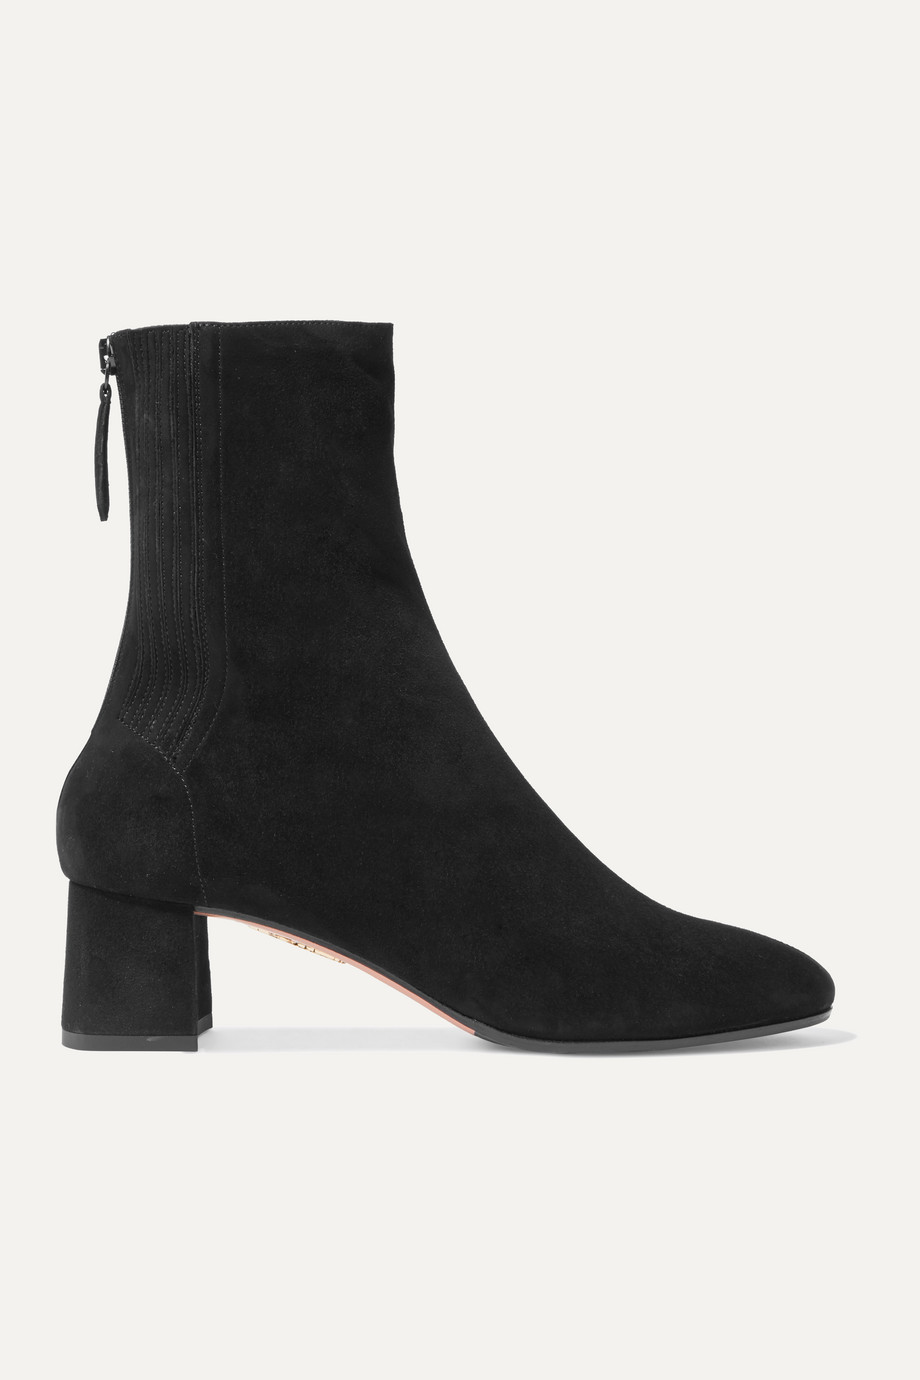 Aquazzura Saint Honoré 50 suede sock boots